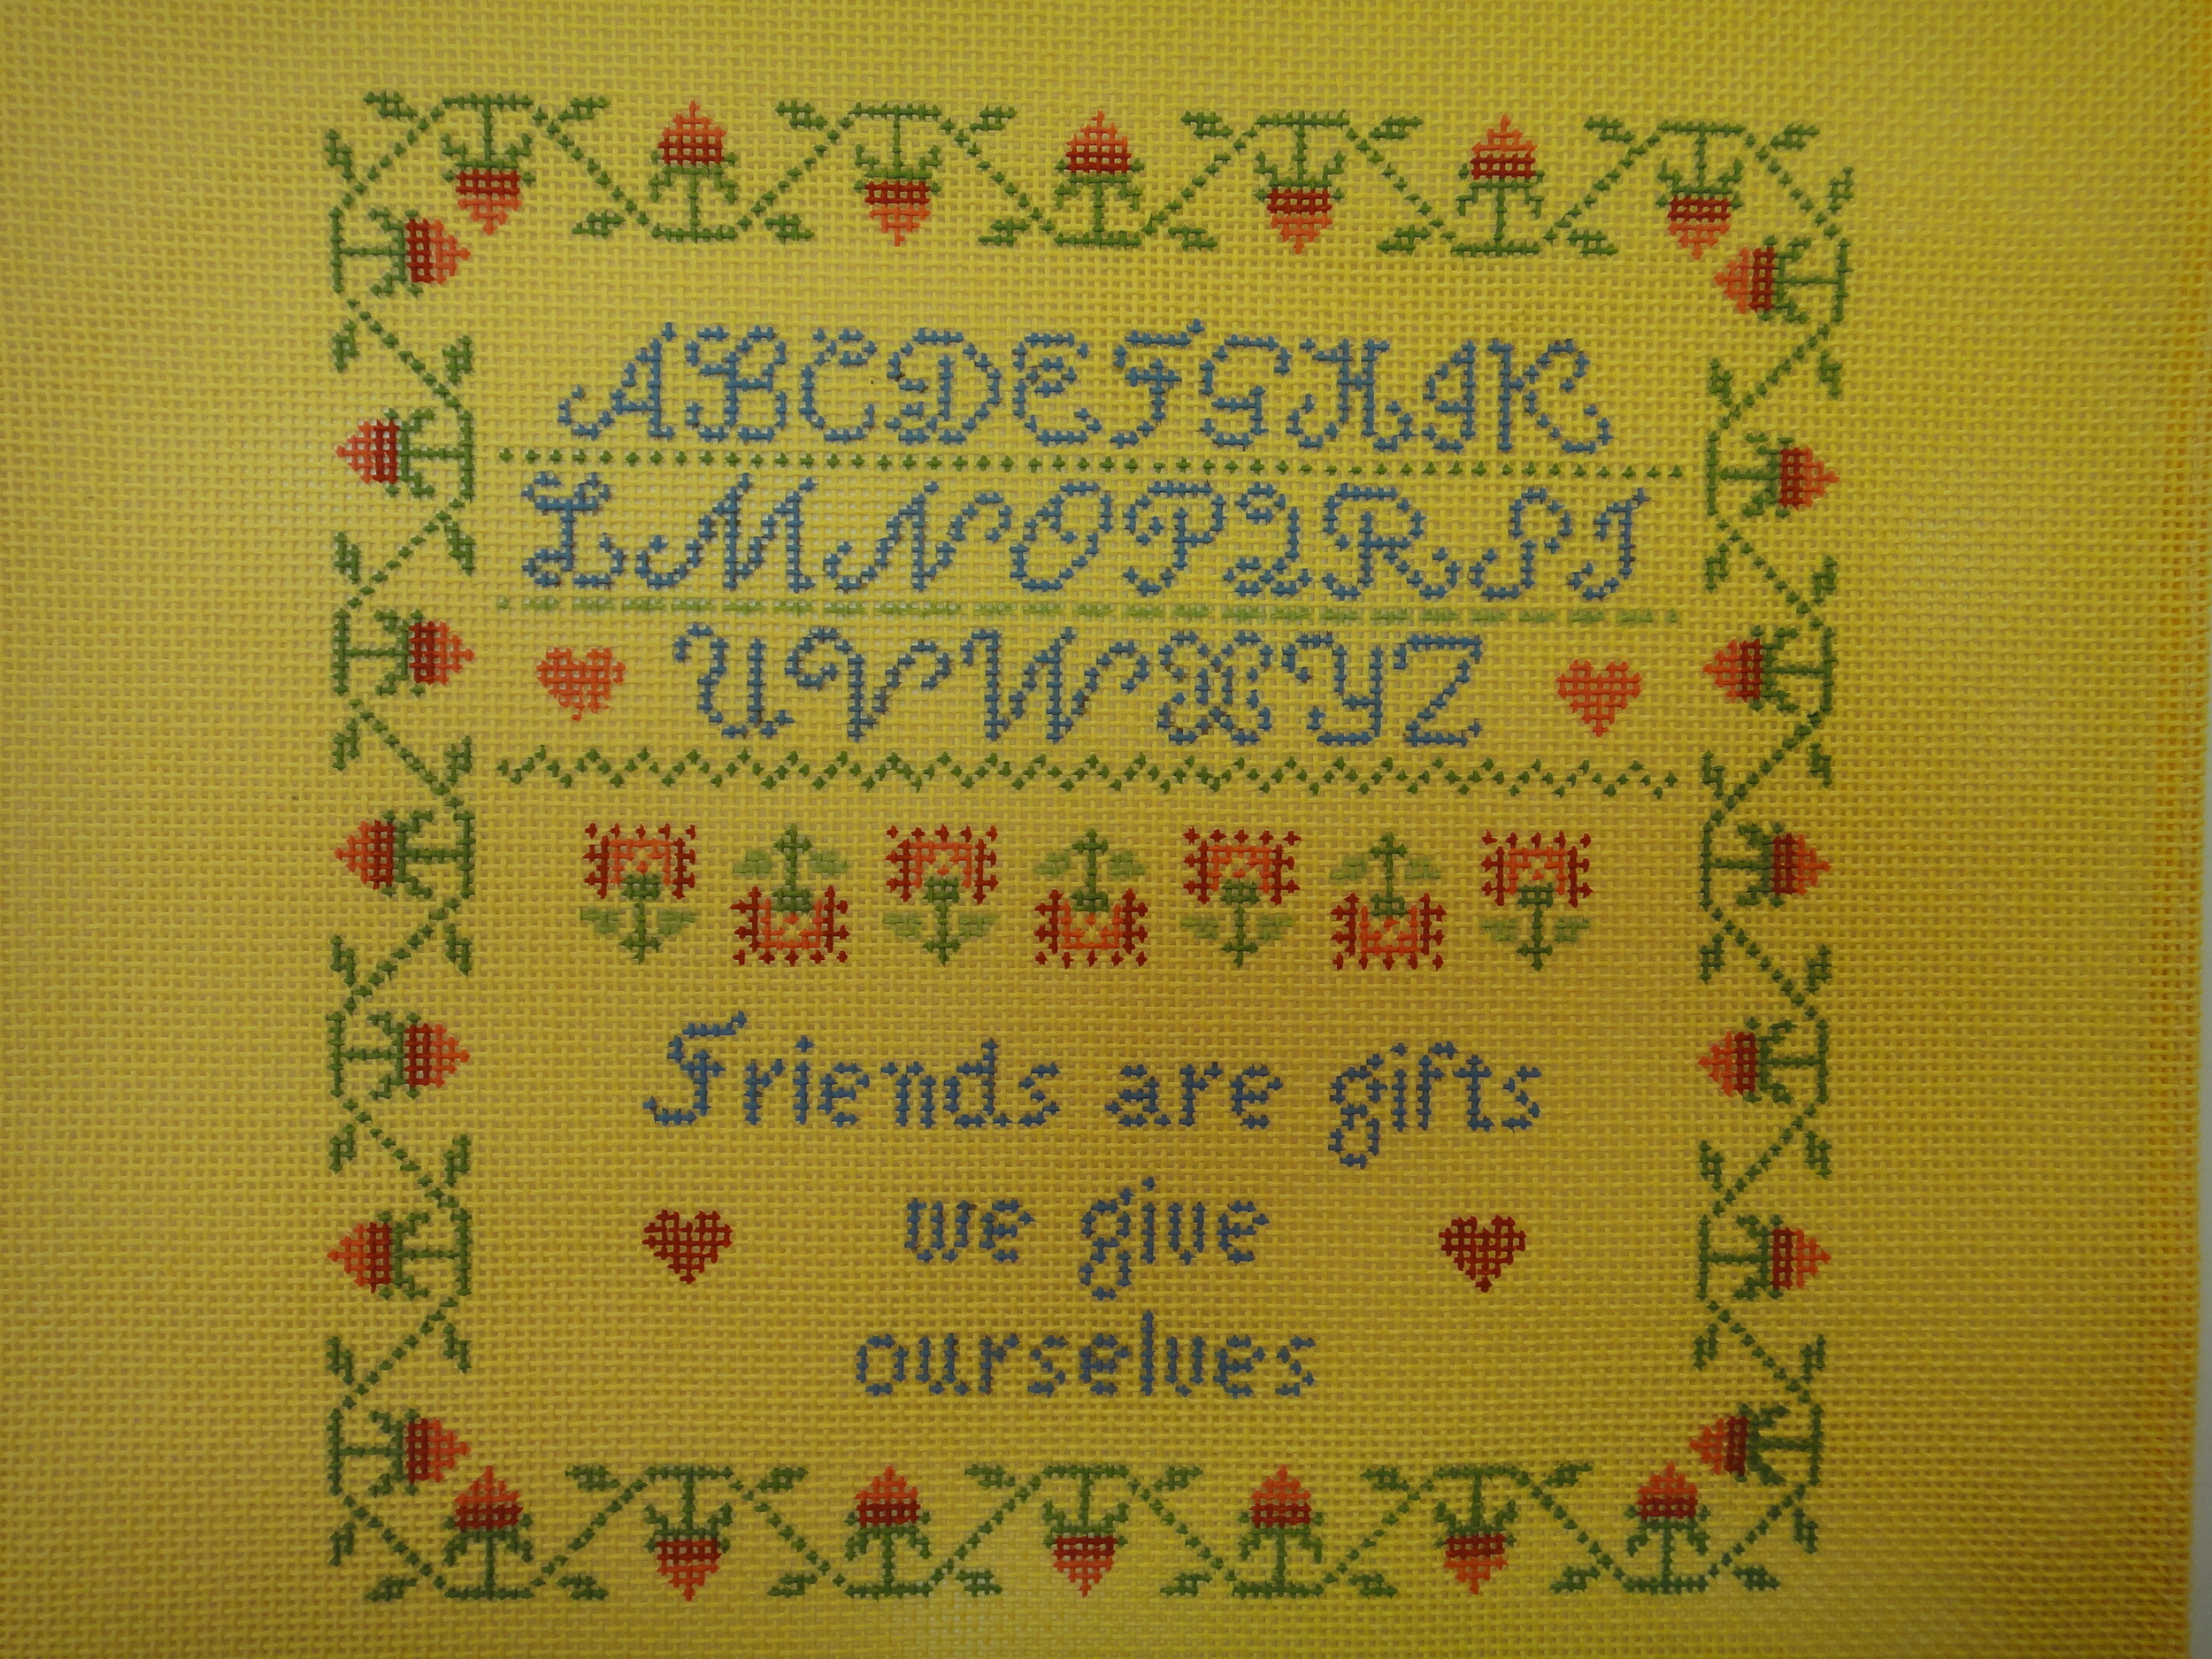 S3 Friends are Gifts (7x7)